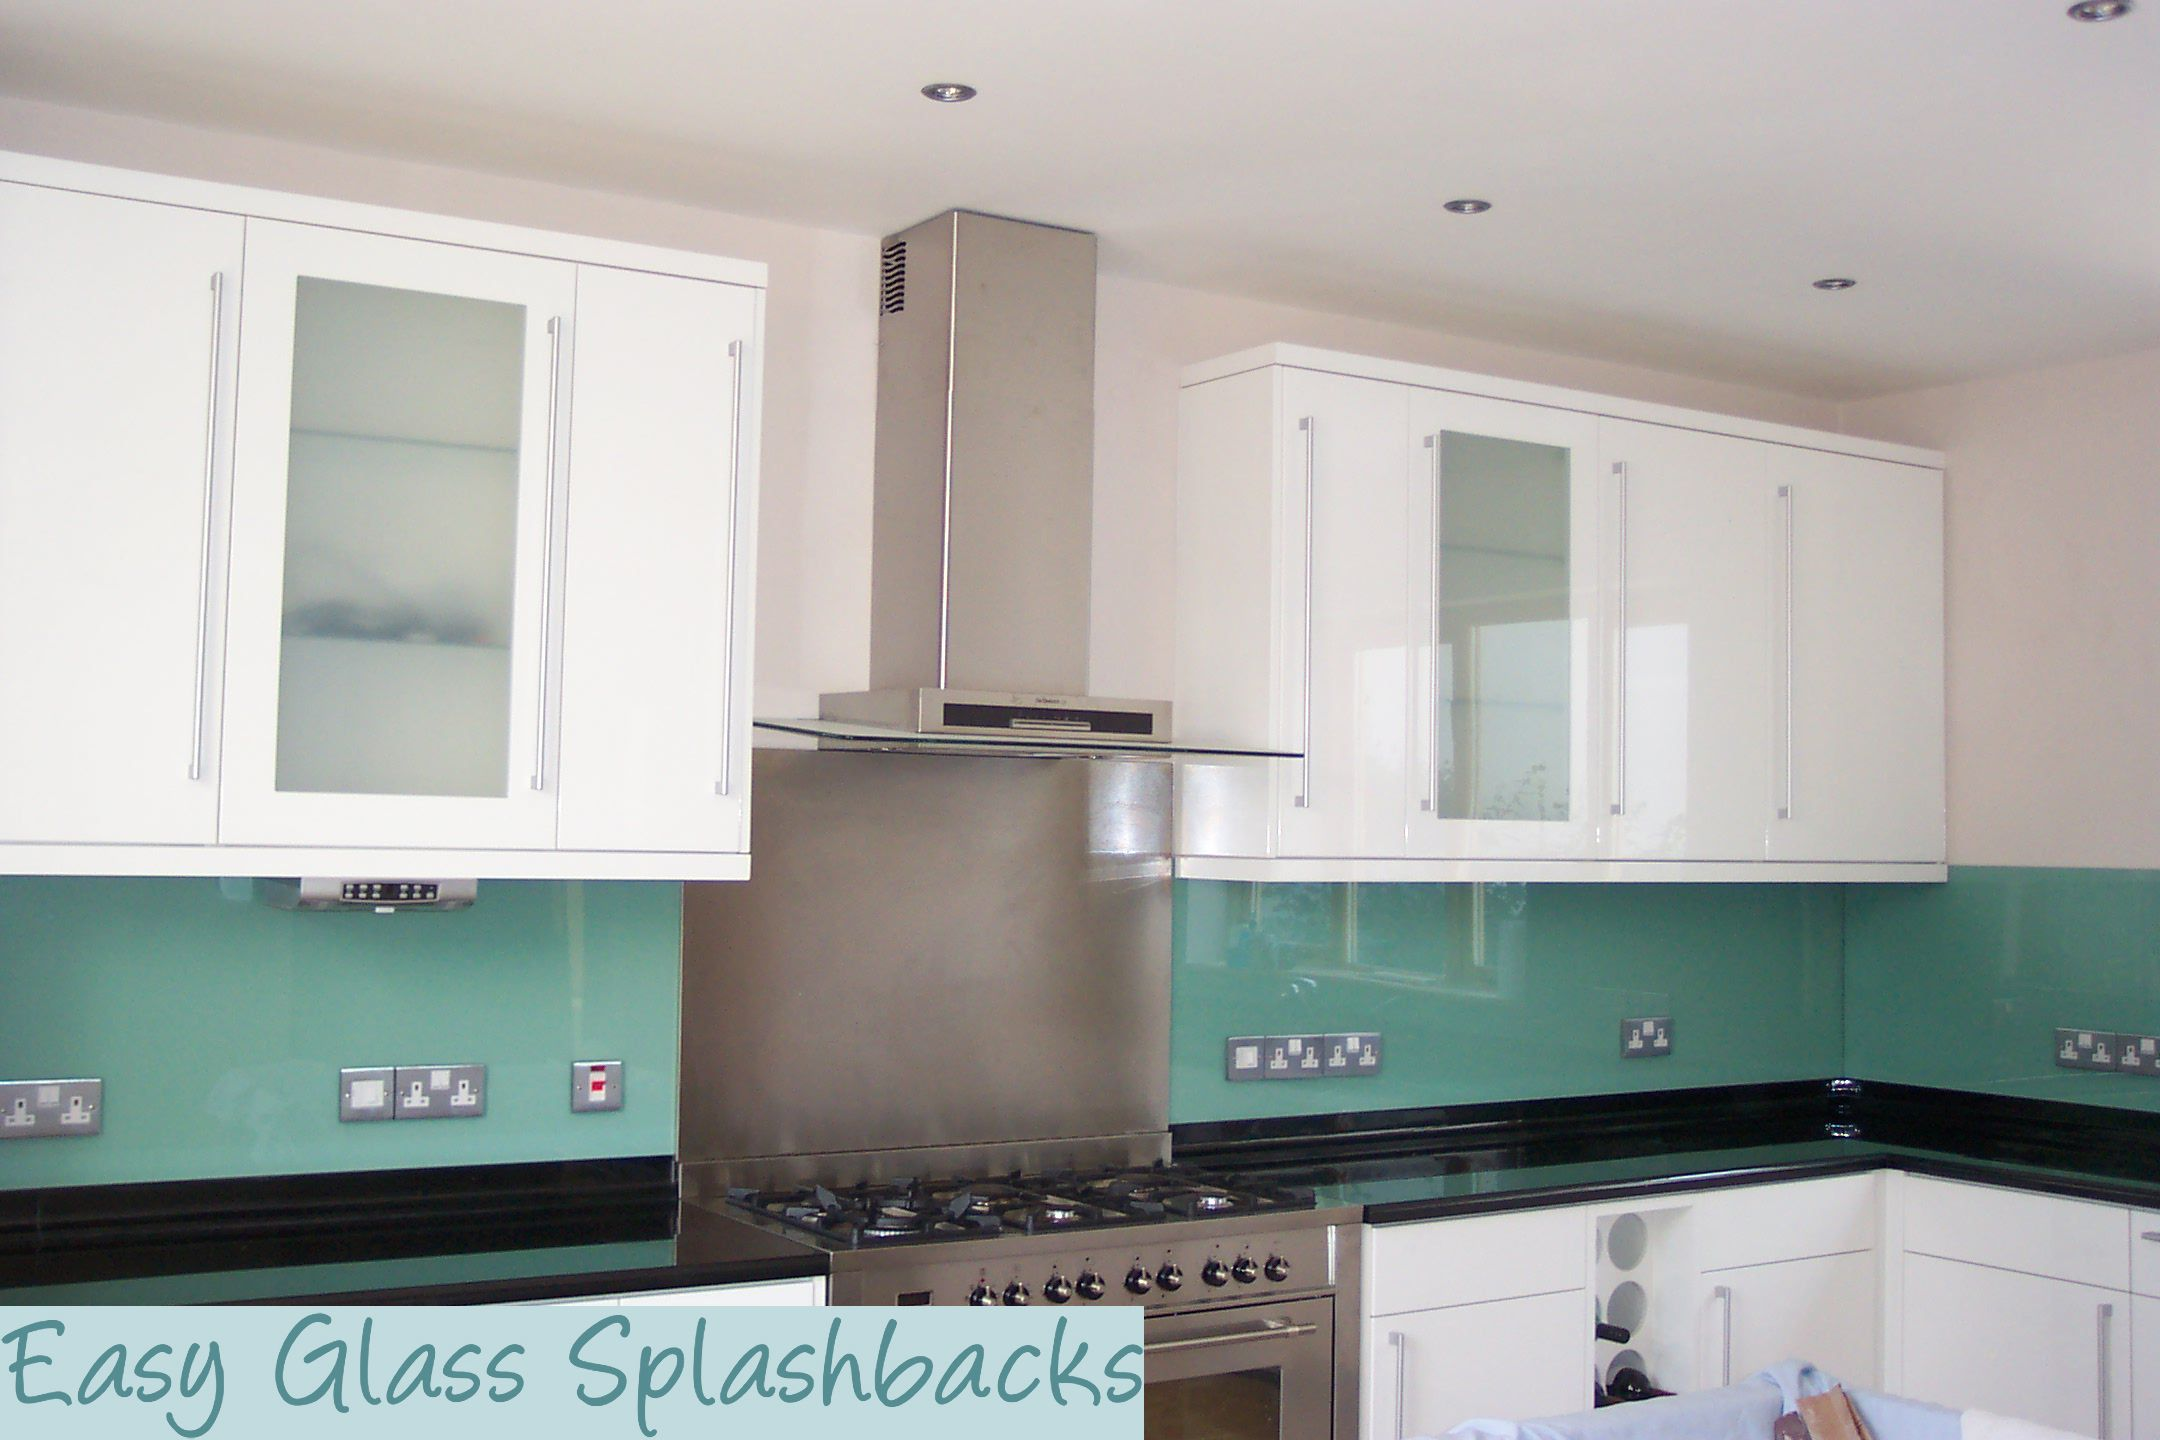 Mint Green coloured glass splashback in a White Kitchen with black